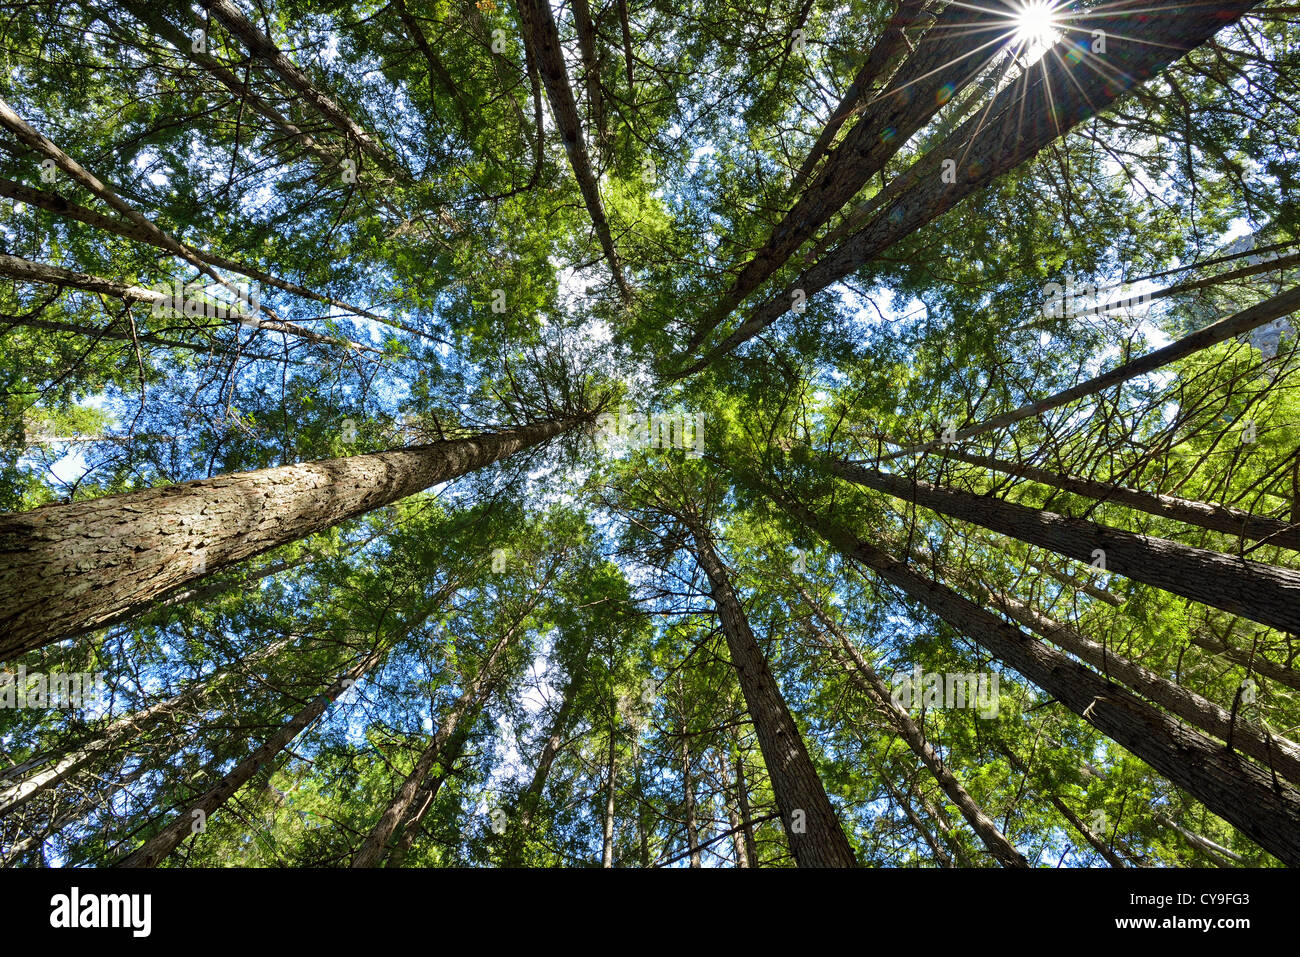 Looking up at the canopy through the tall trees with green leaves and blue sky. - Stock Image